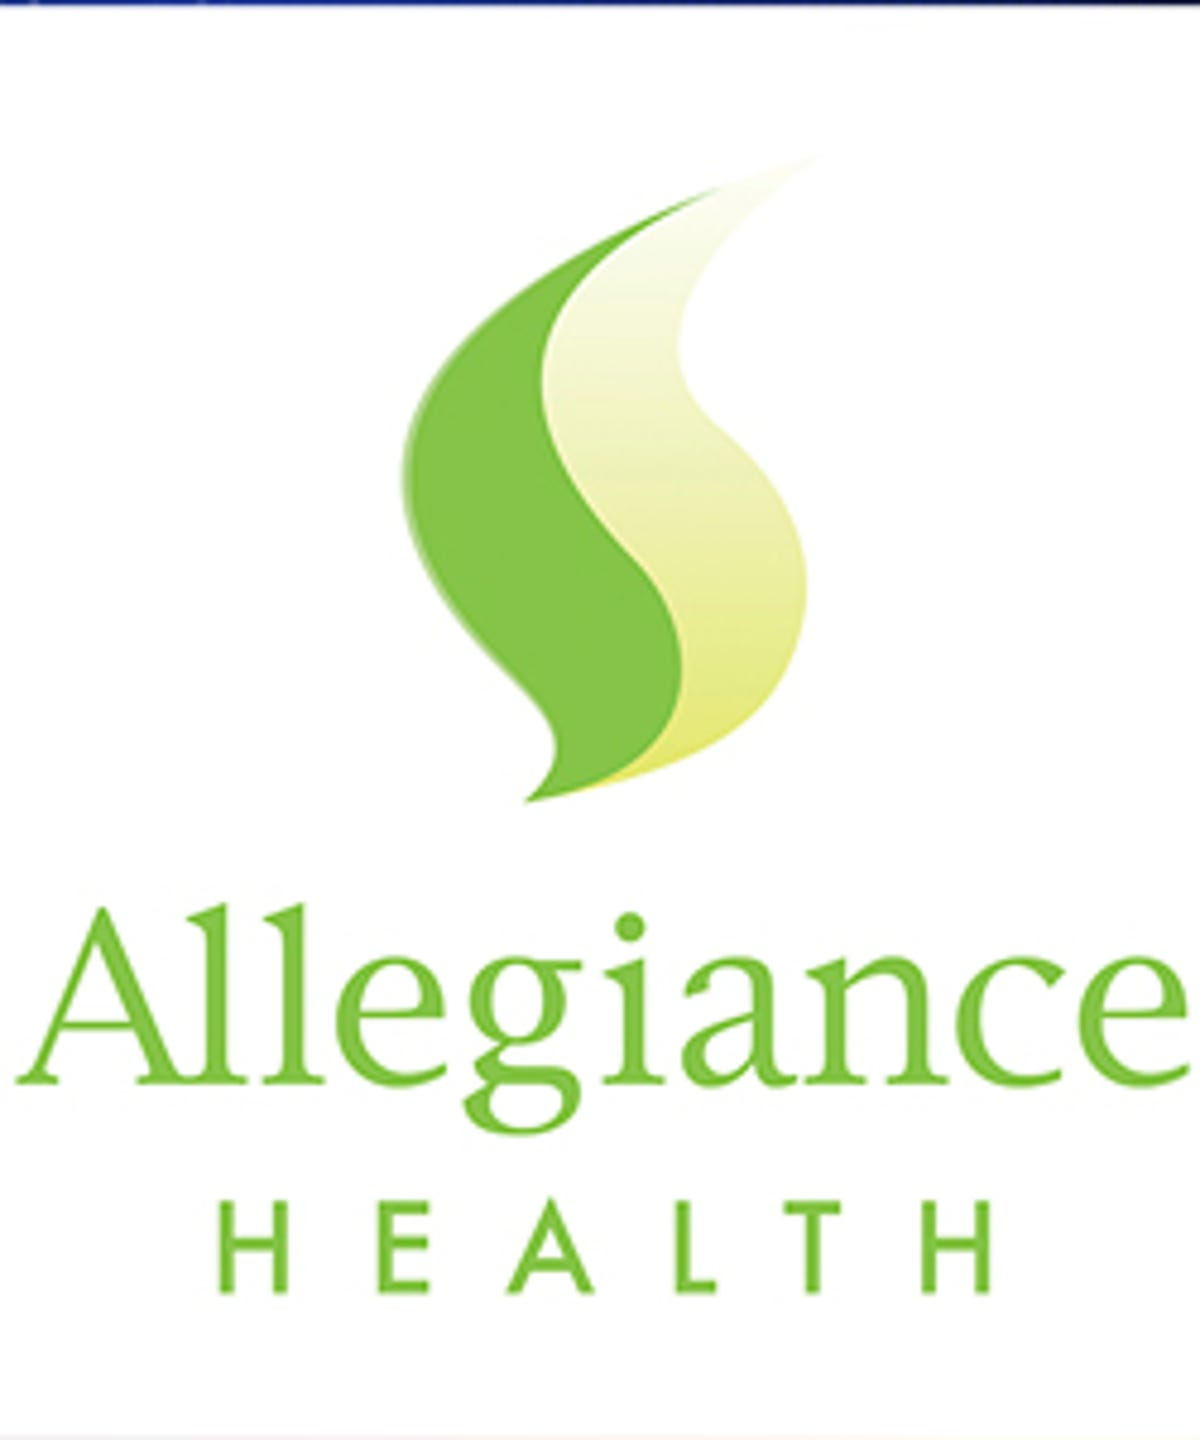 Allegiance Health in Jackson to join Henry Ford system